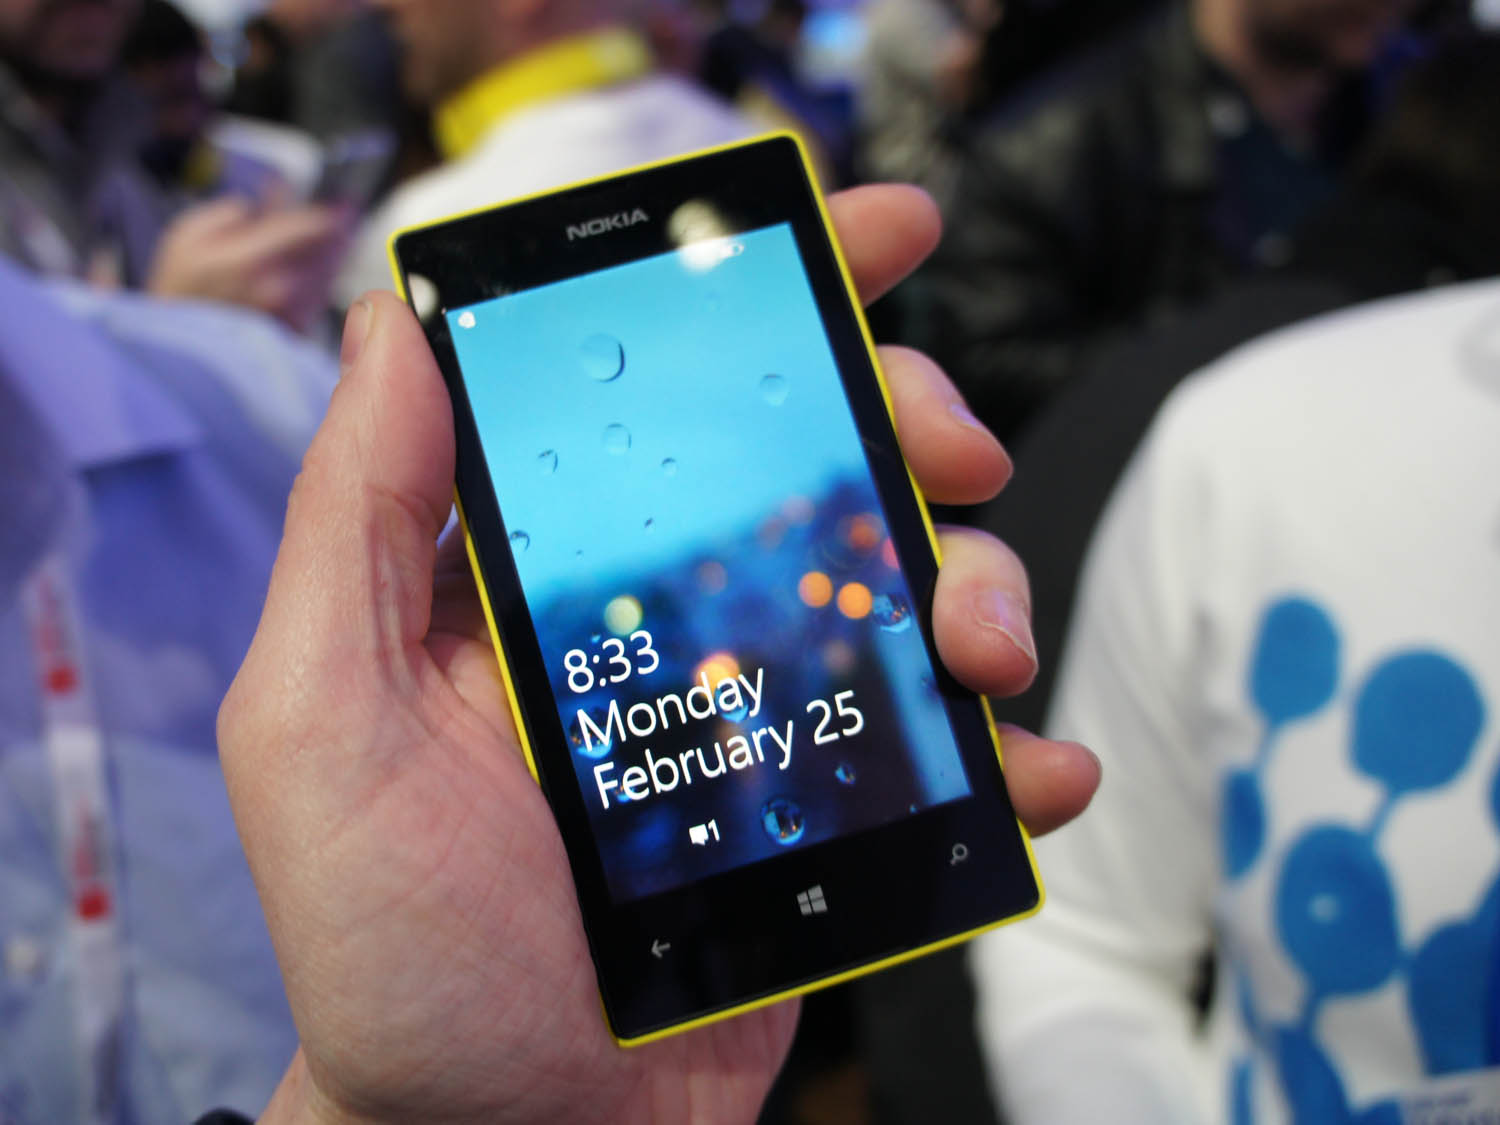 How to safely master reset nokia lumia 520 with easy hard reset nokia lumia 520 is nokia smartphone family with windows phone 8 operating system for everyone who love to use or try to taste the microsoft windows phone 8 ccuart Image collections